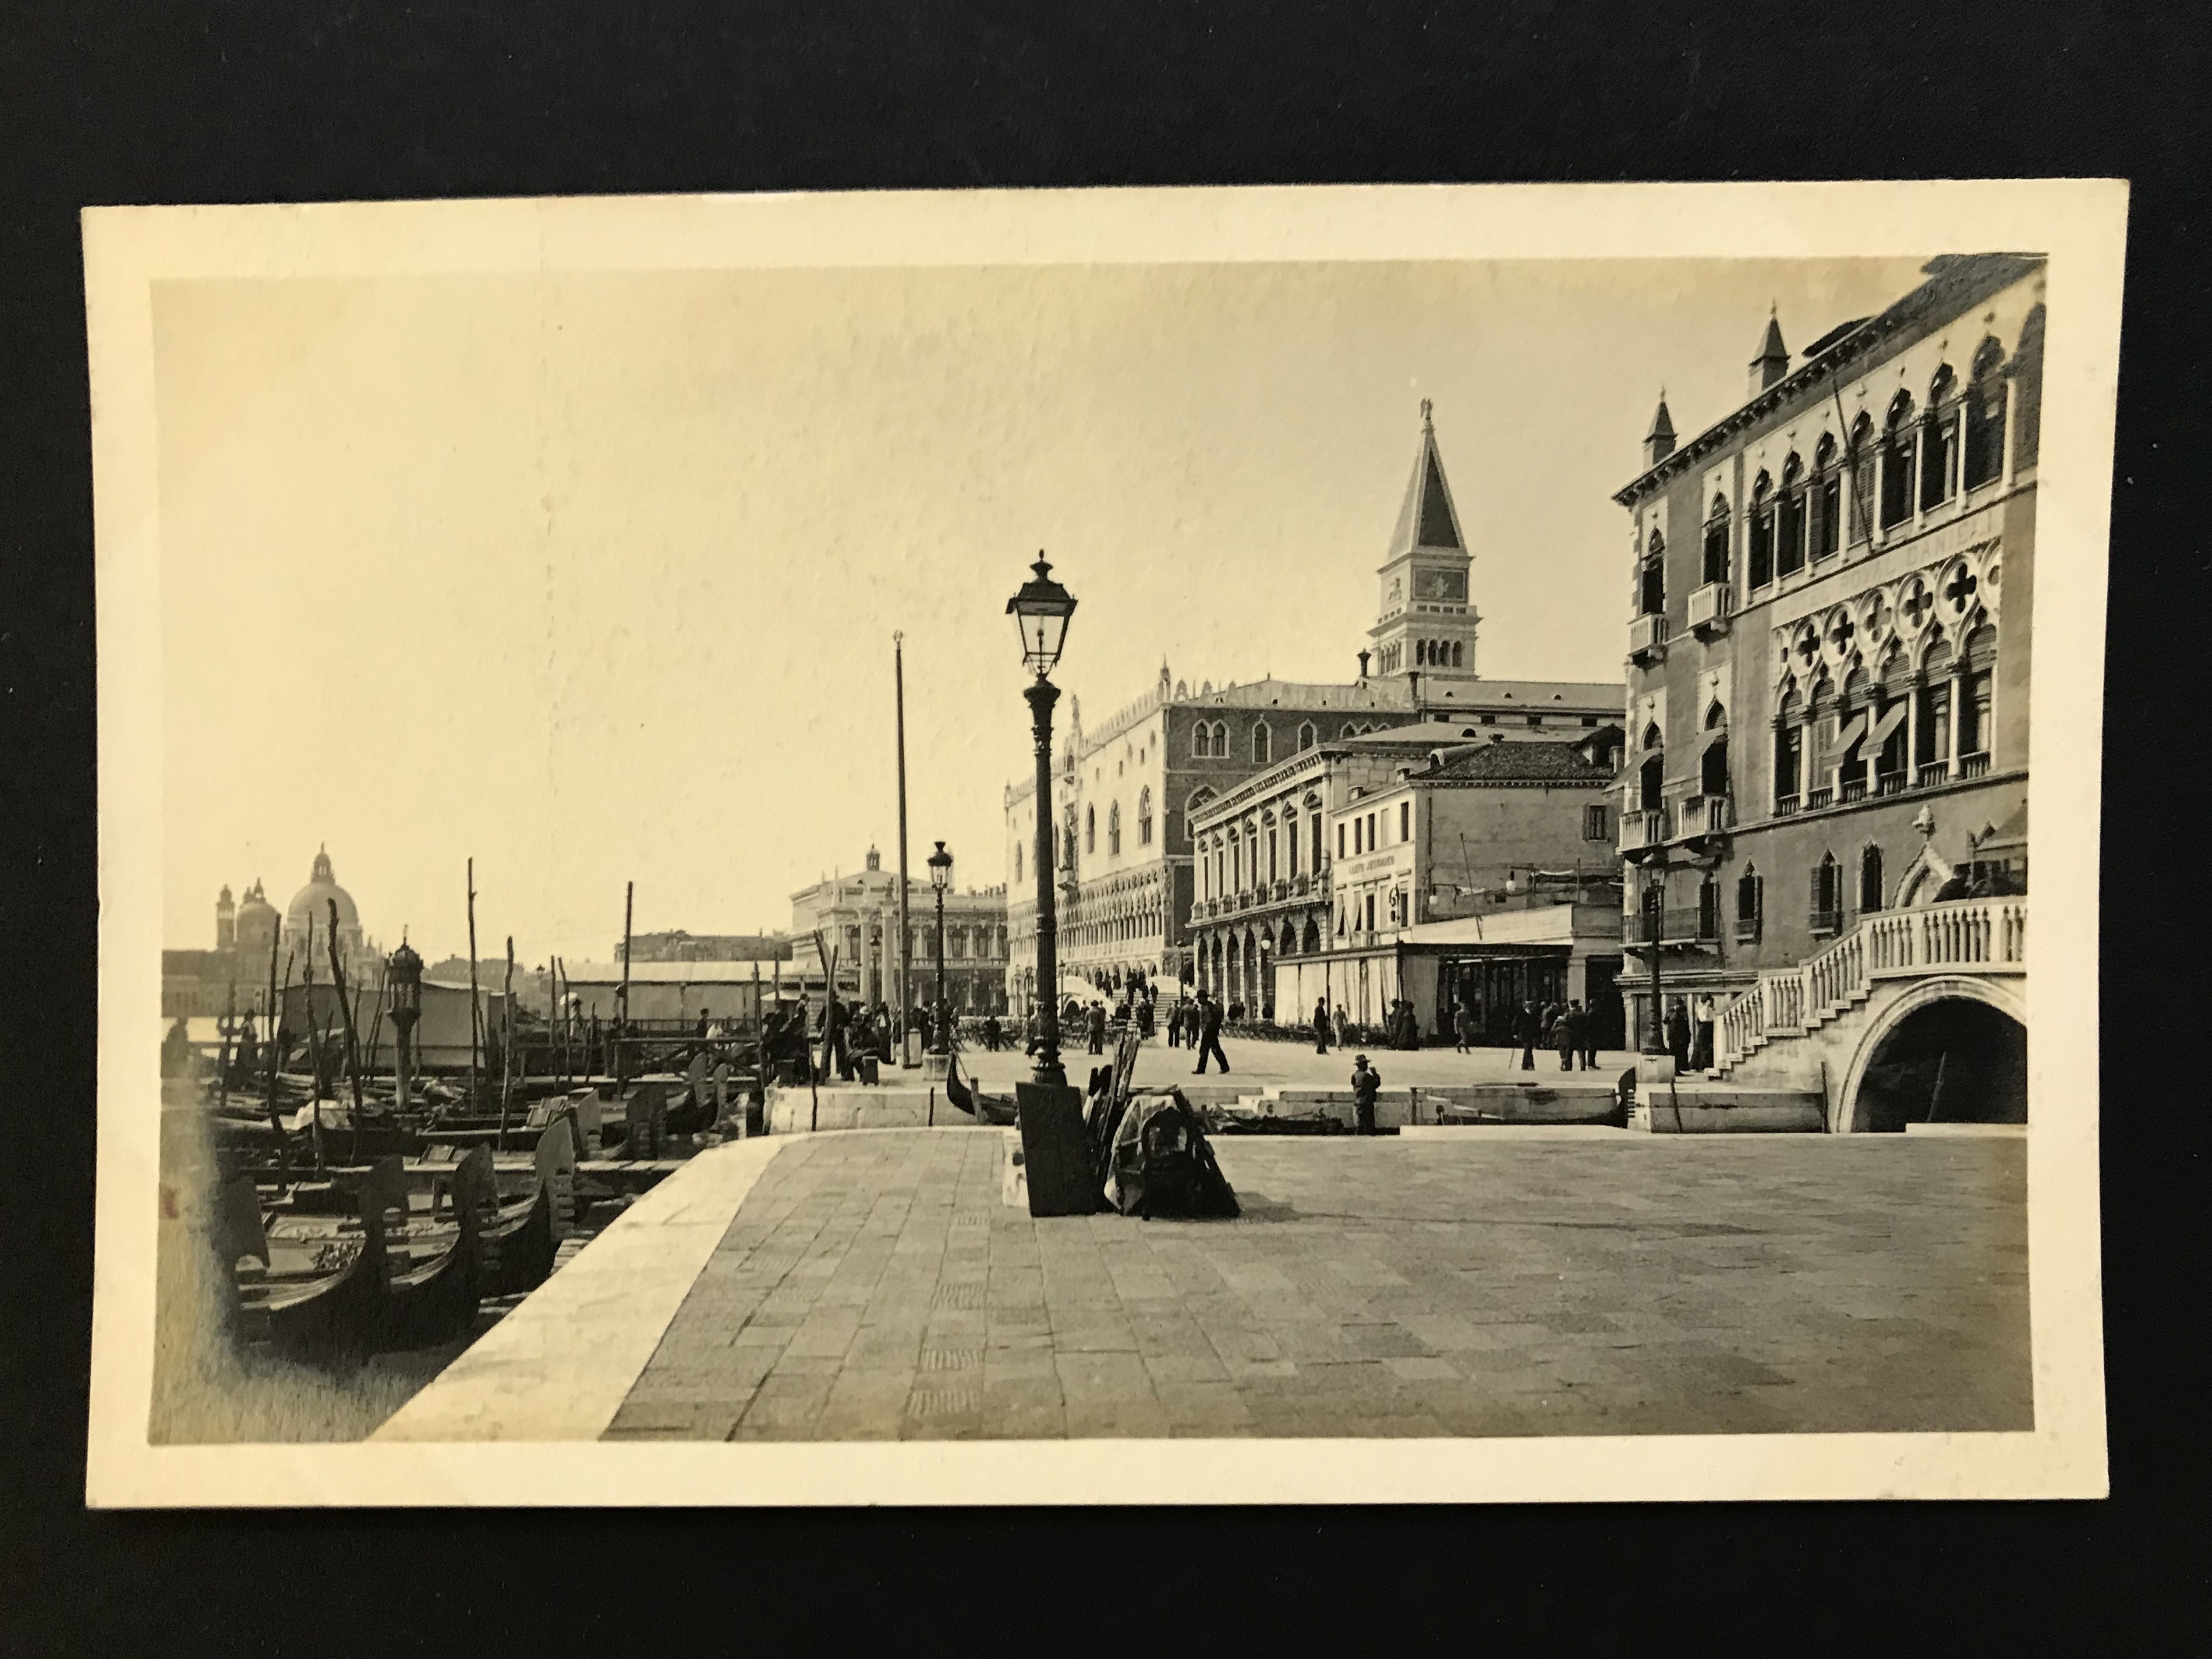 SELECTION OF VENICE RELATED POSTCARDS - Image 44 of 53